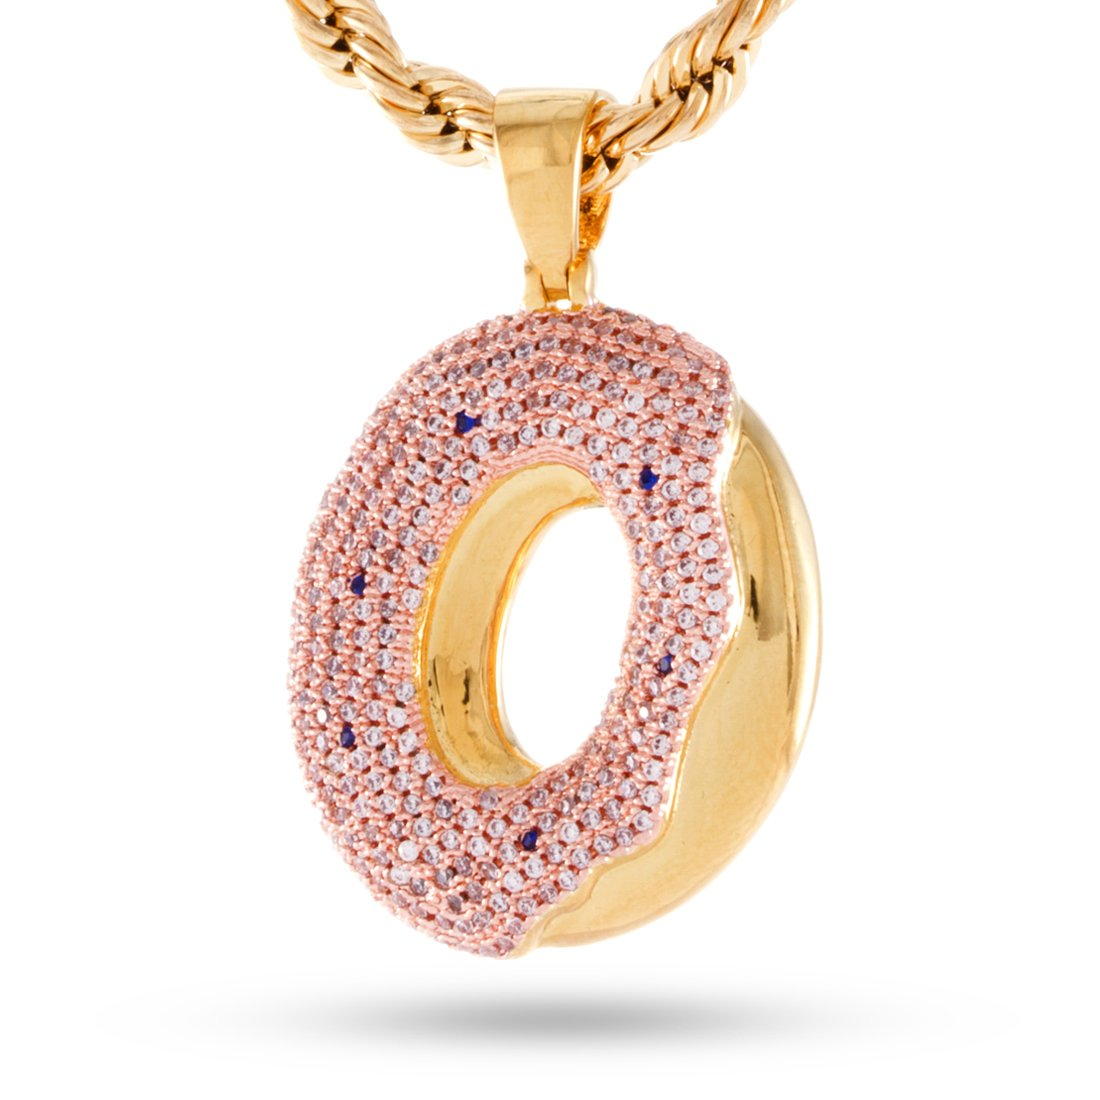 The 14K Gold Plated Odd Future Donut by King Ice